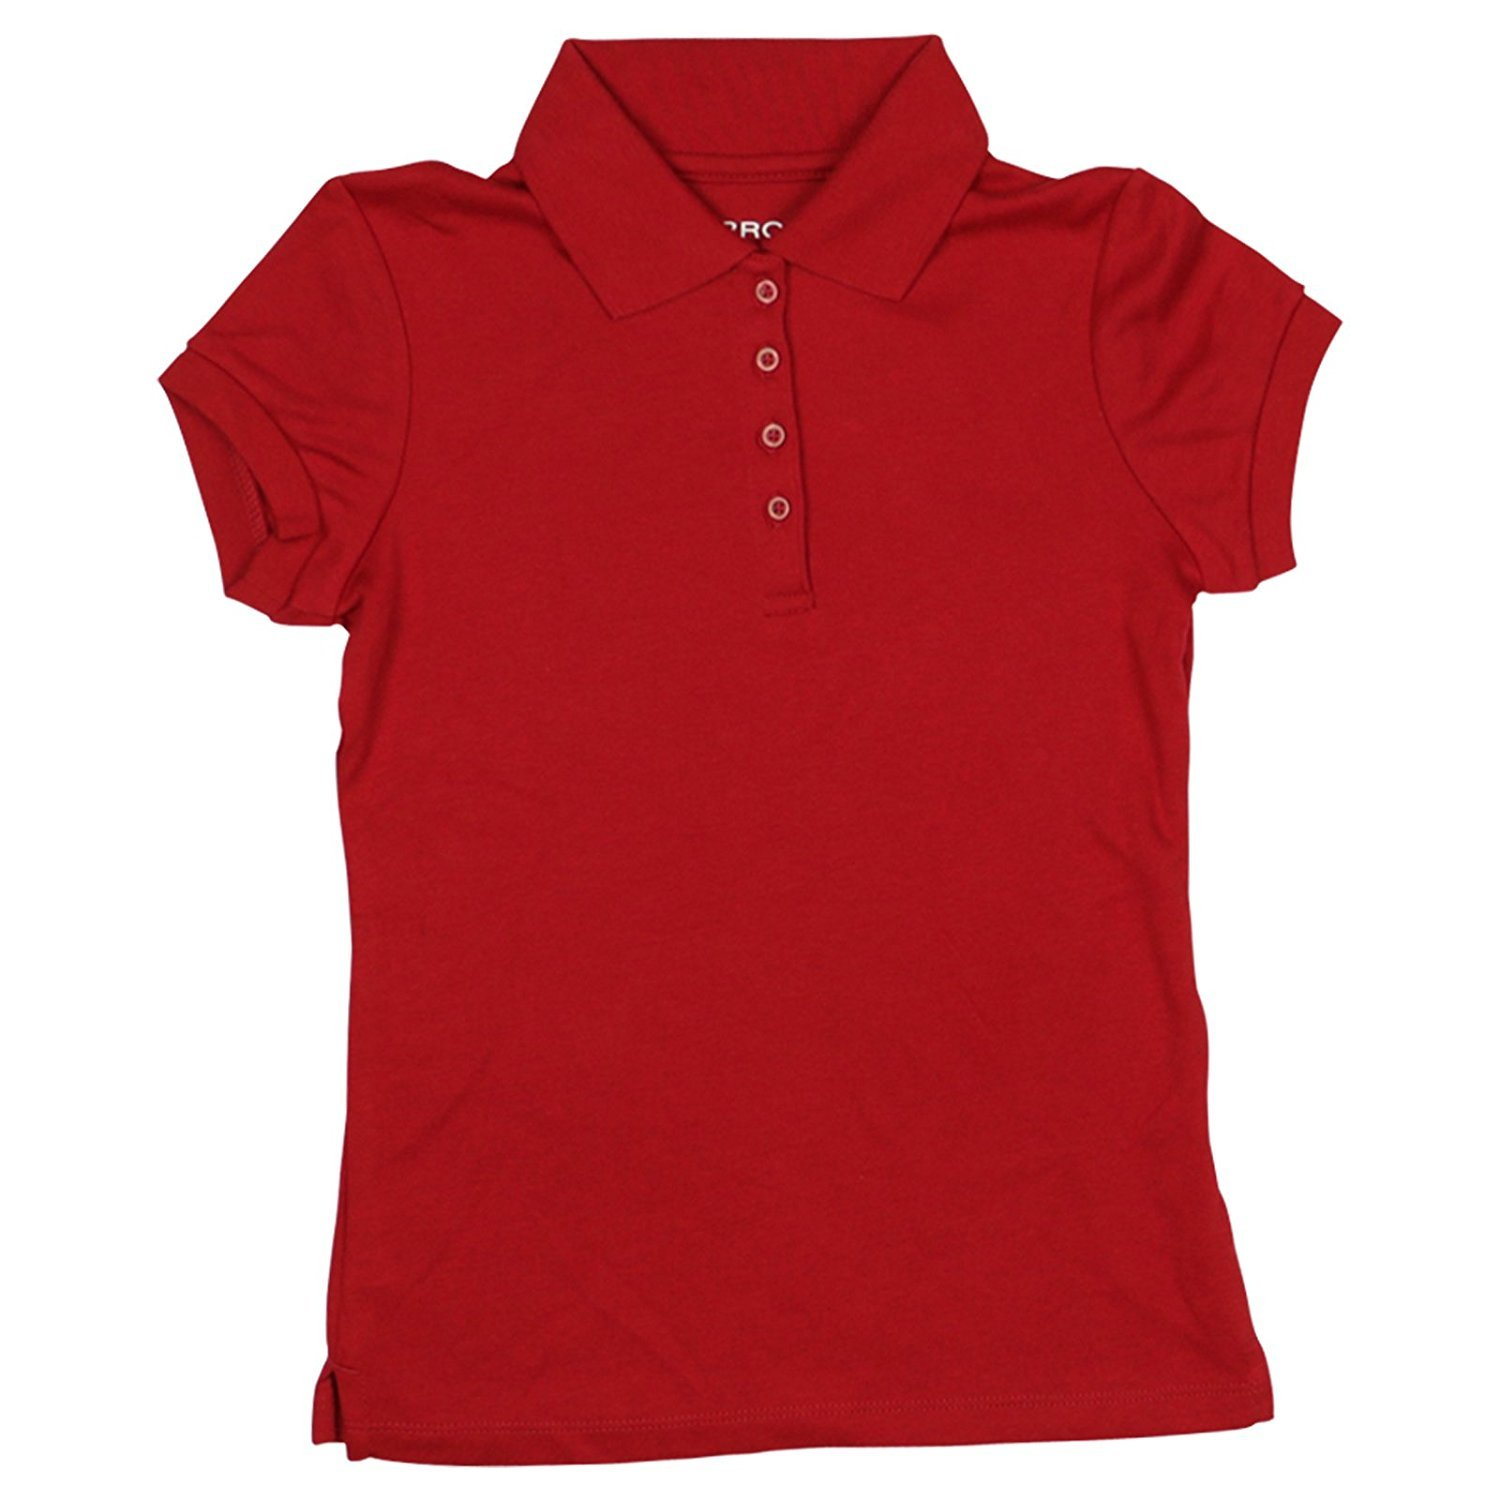 Arrow Girls Size Large 12/14 Approved Schoolwear Short Sleeve Polo Shirt, Red